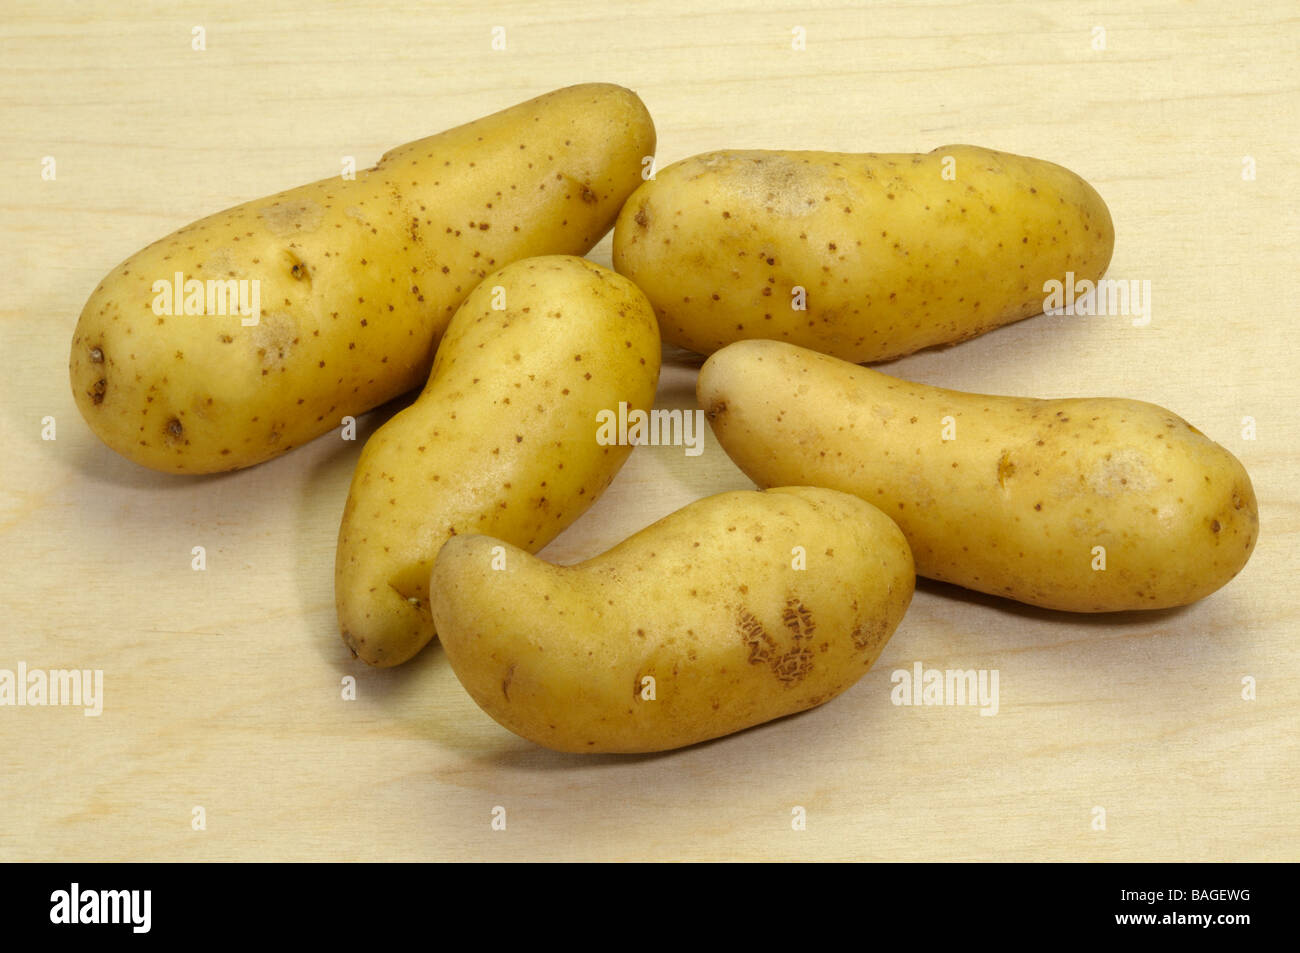 Potato (Solanum tuberosum), variety: La Ratte d Ardeche, studio picture Stock Photo